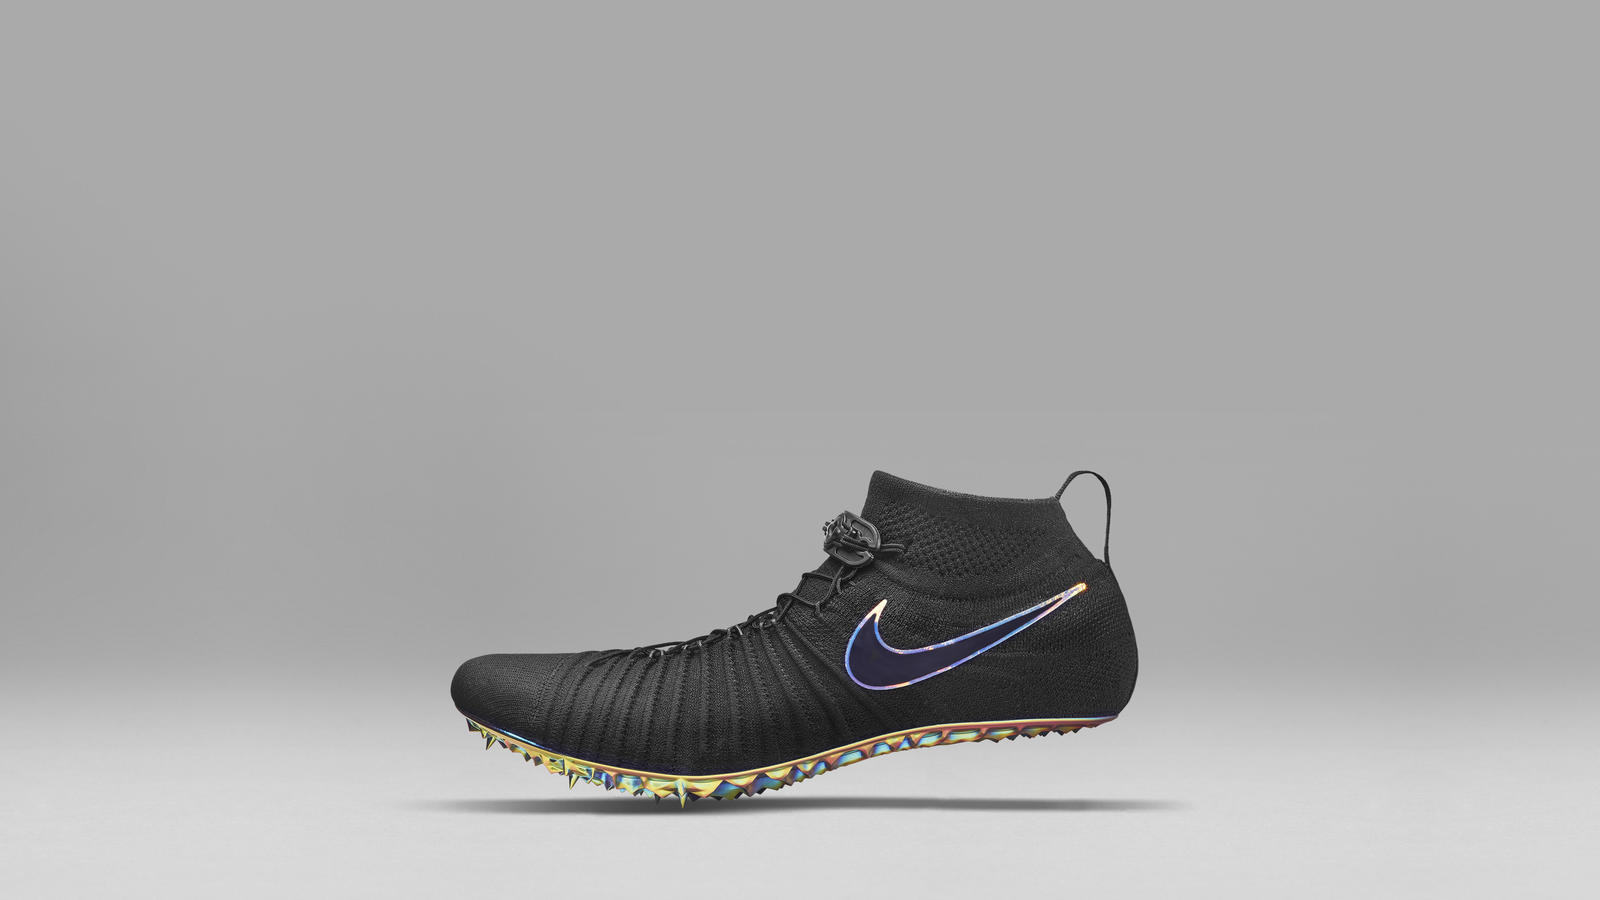 72e910b35f2 Nike Zoom Superfly Flyknit - Nike News